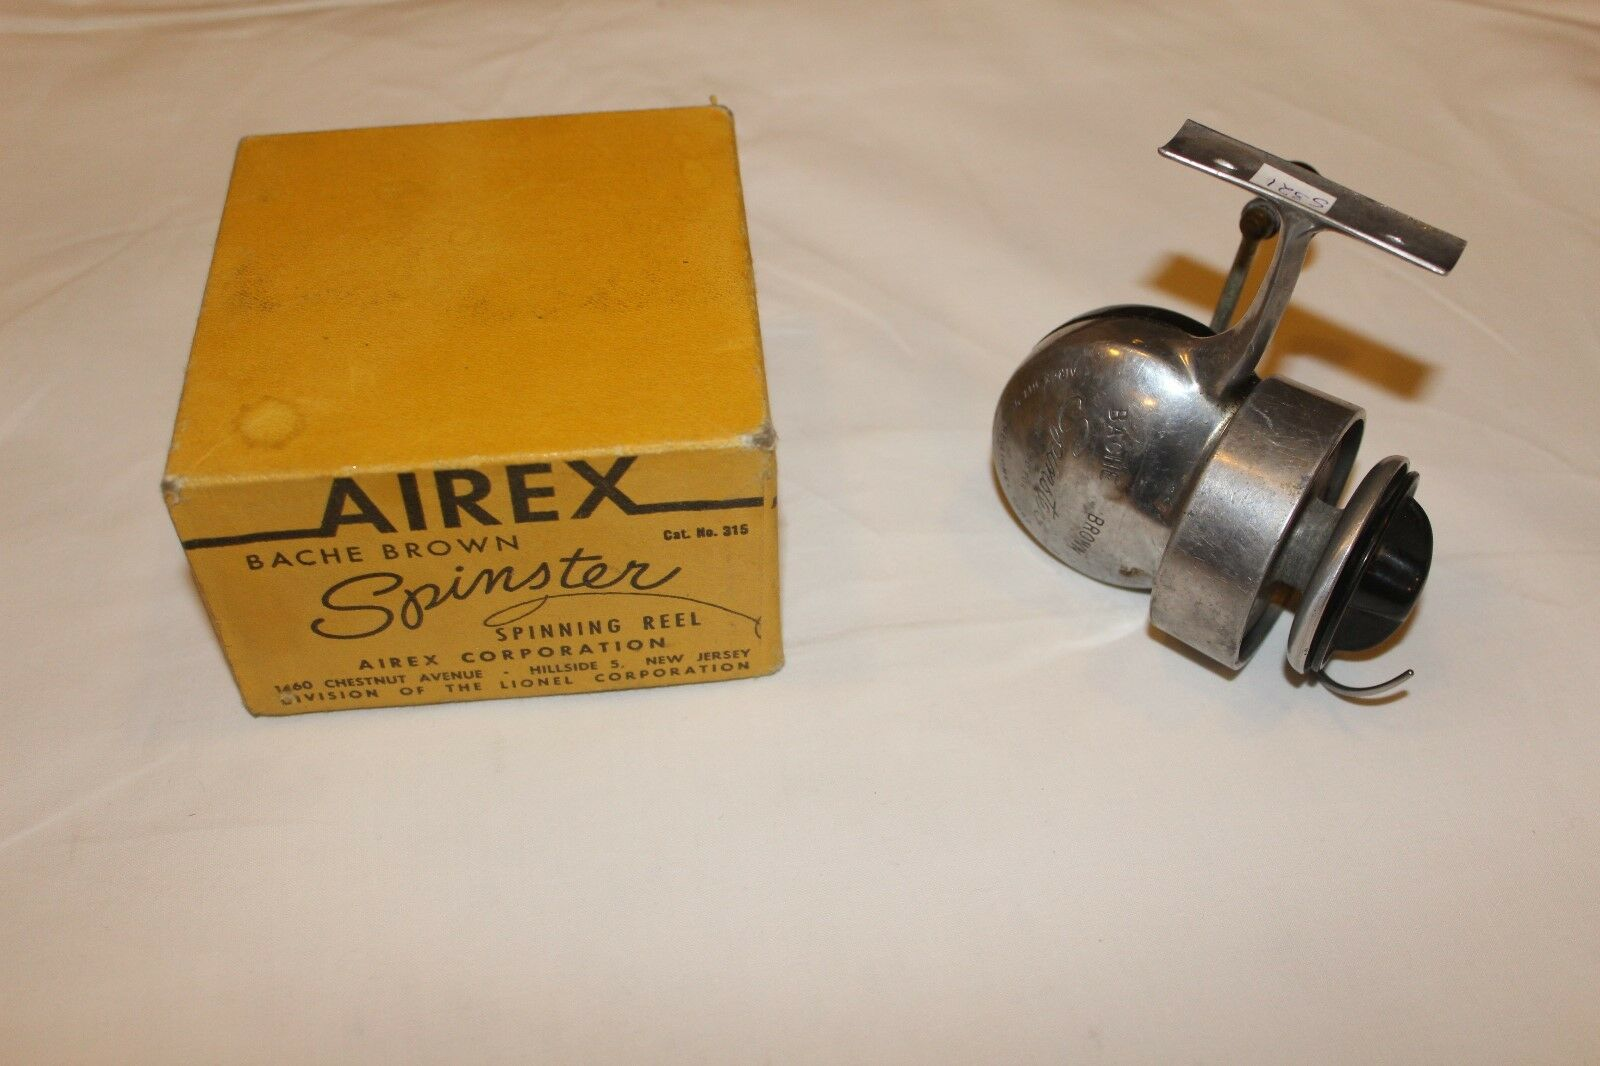 AIREX ovp-nr-632 Spinster-mezzo STAFFA nel ovp-nr-632 AIREX 2a2f29